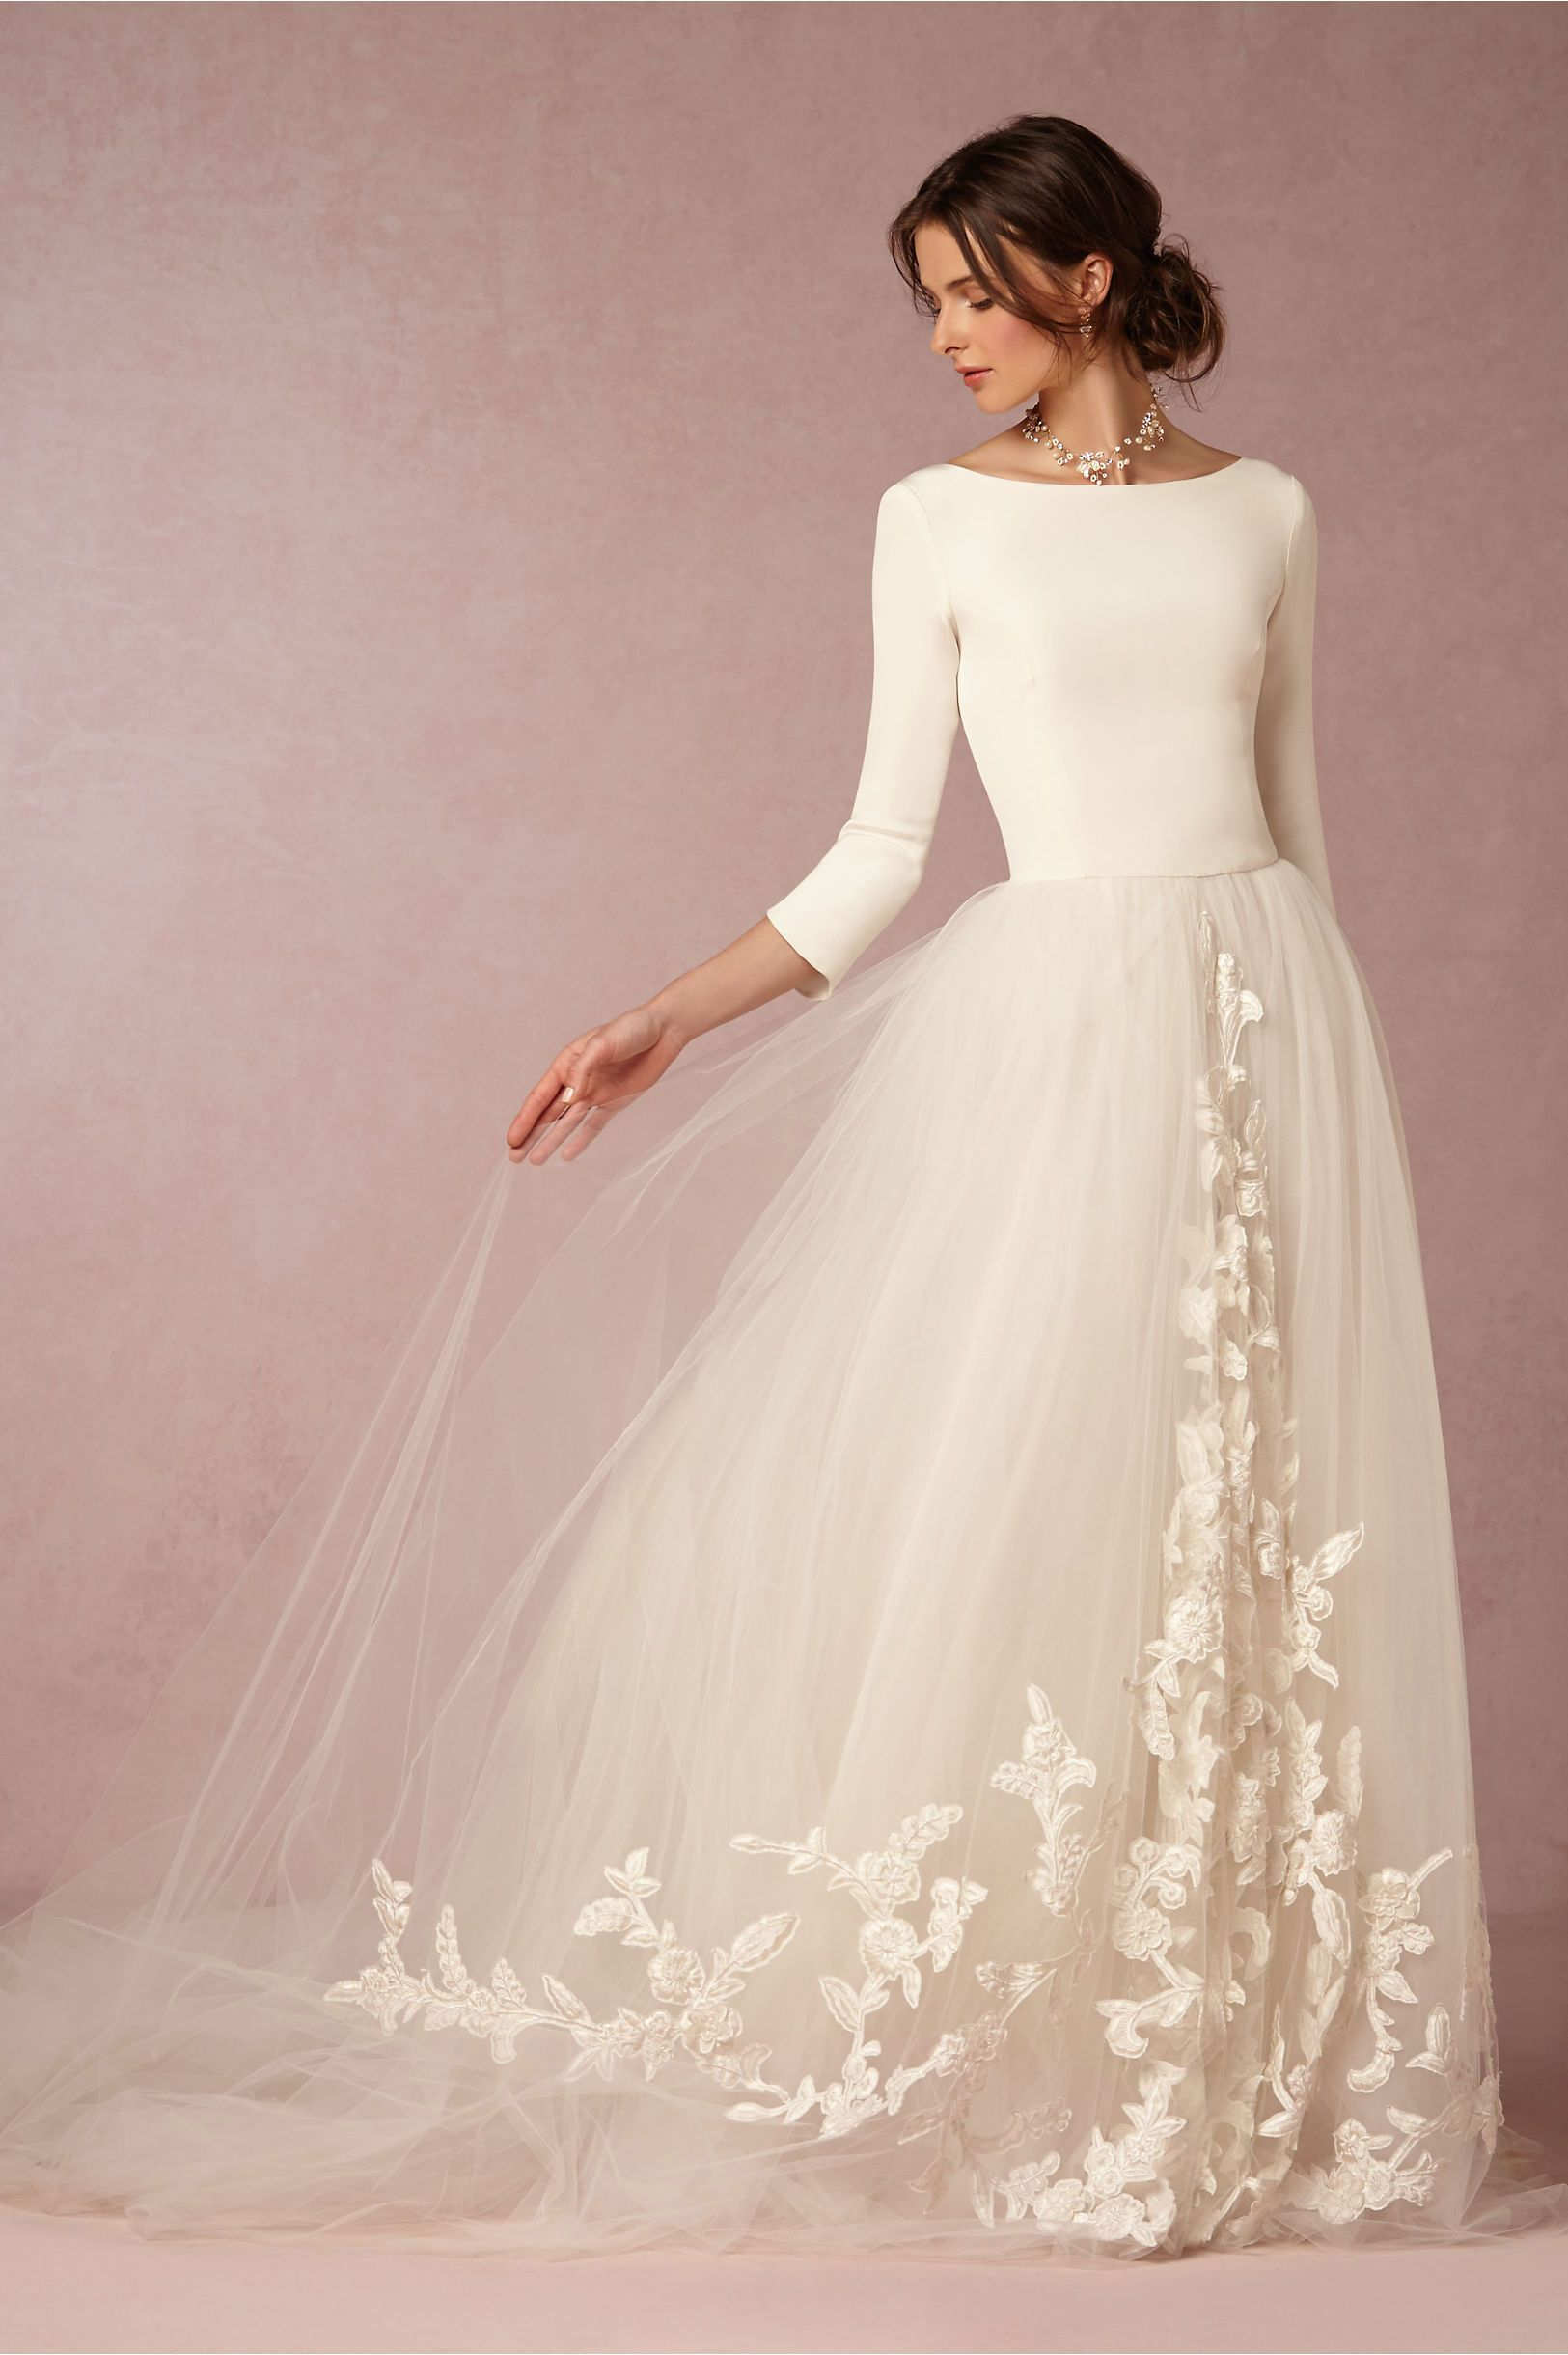 A Wedding Expert Shares the Hottest Bridal Trends for Spring 2016 ...